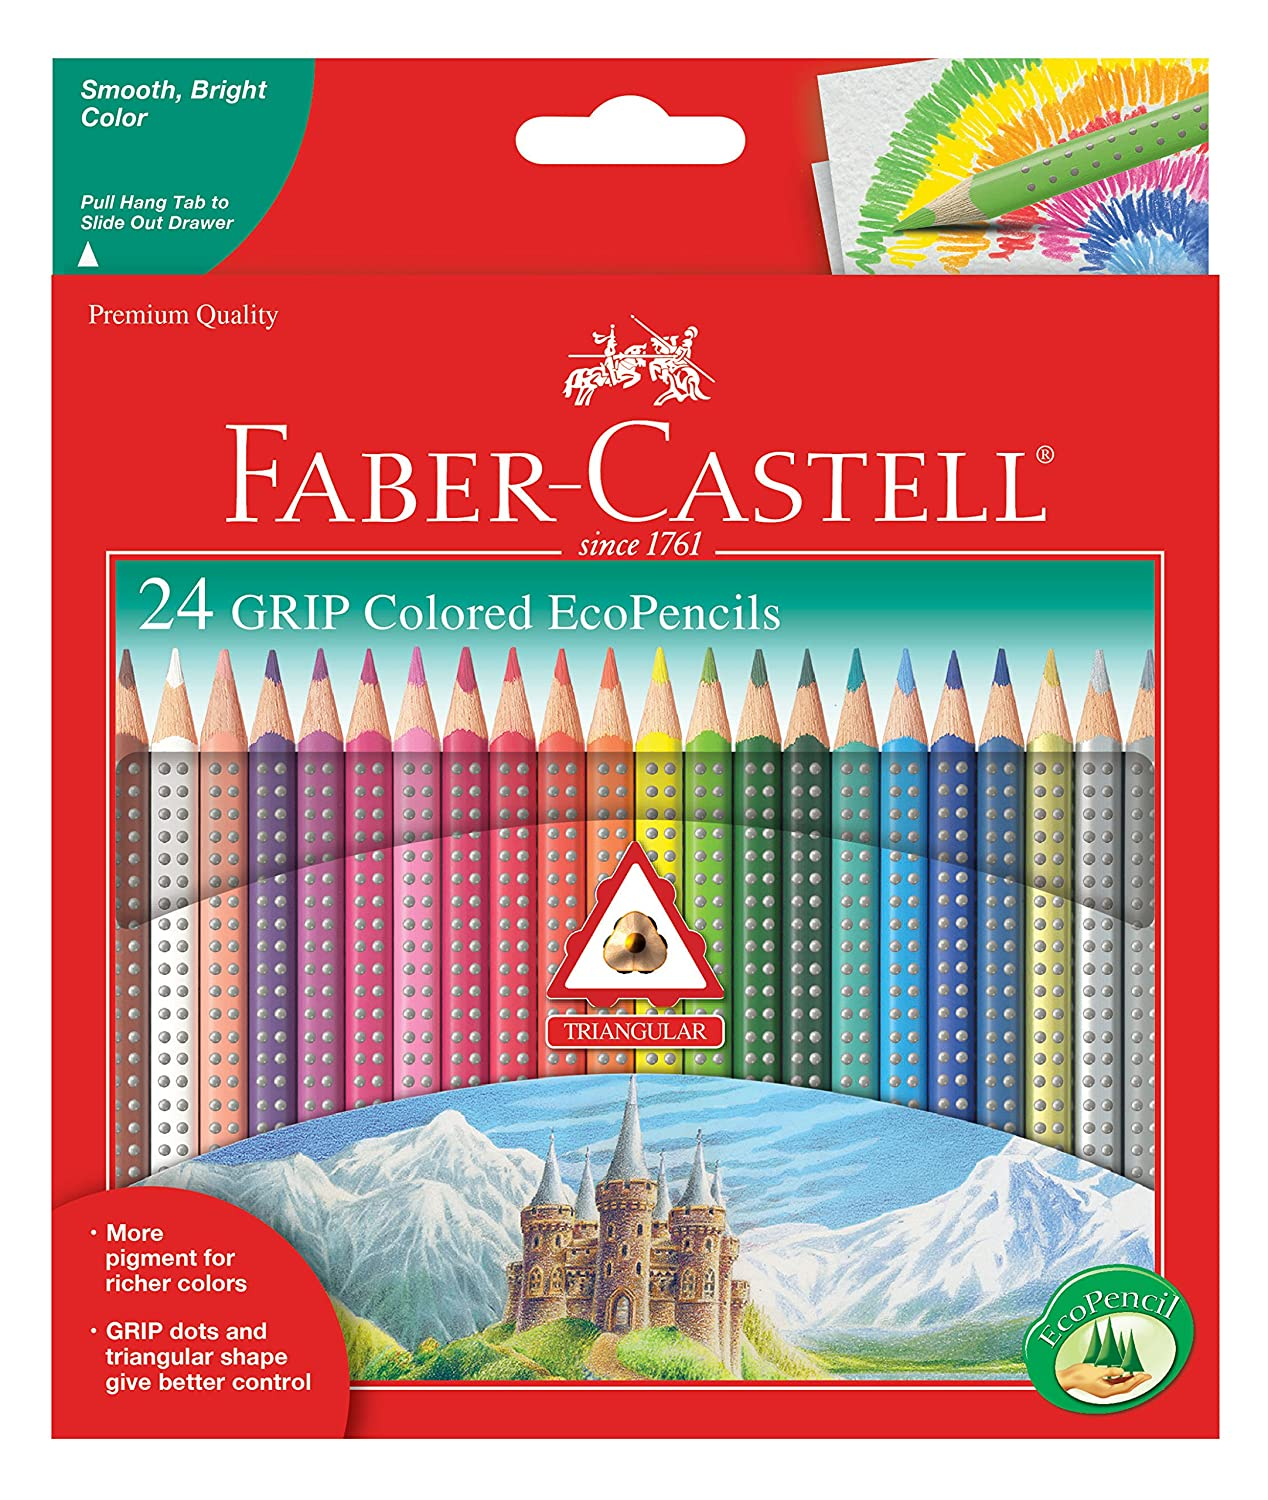 Faber-Castell Triangular Color Pencil Set of 24 Colors Luscombe G G T Luscombe 9121024 Non-Classifiable